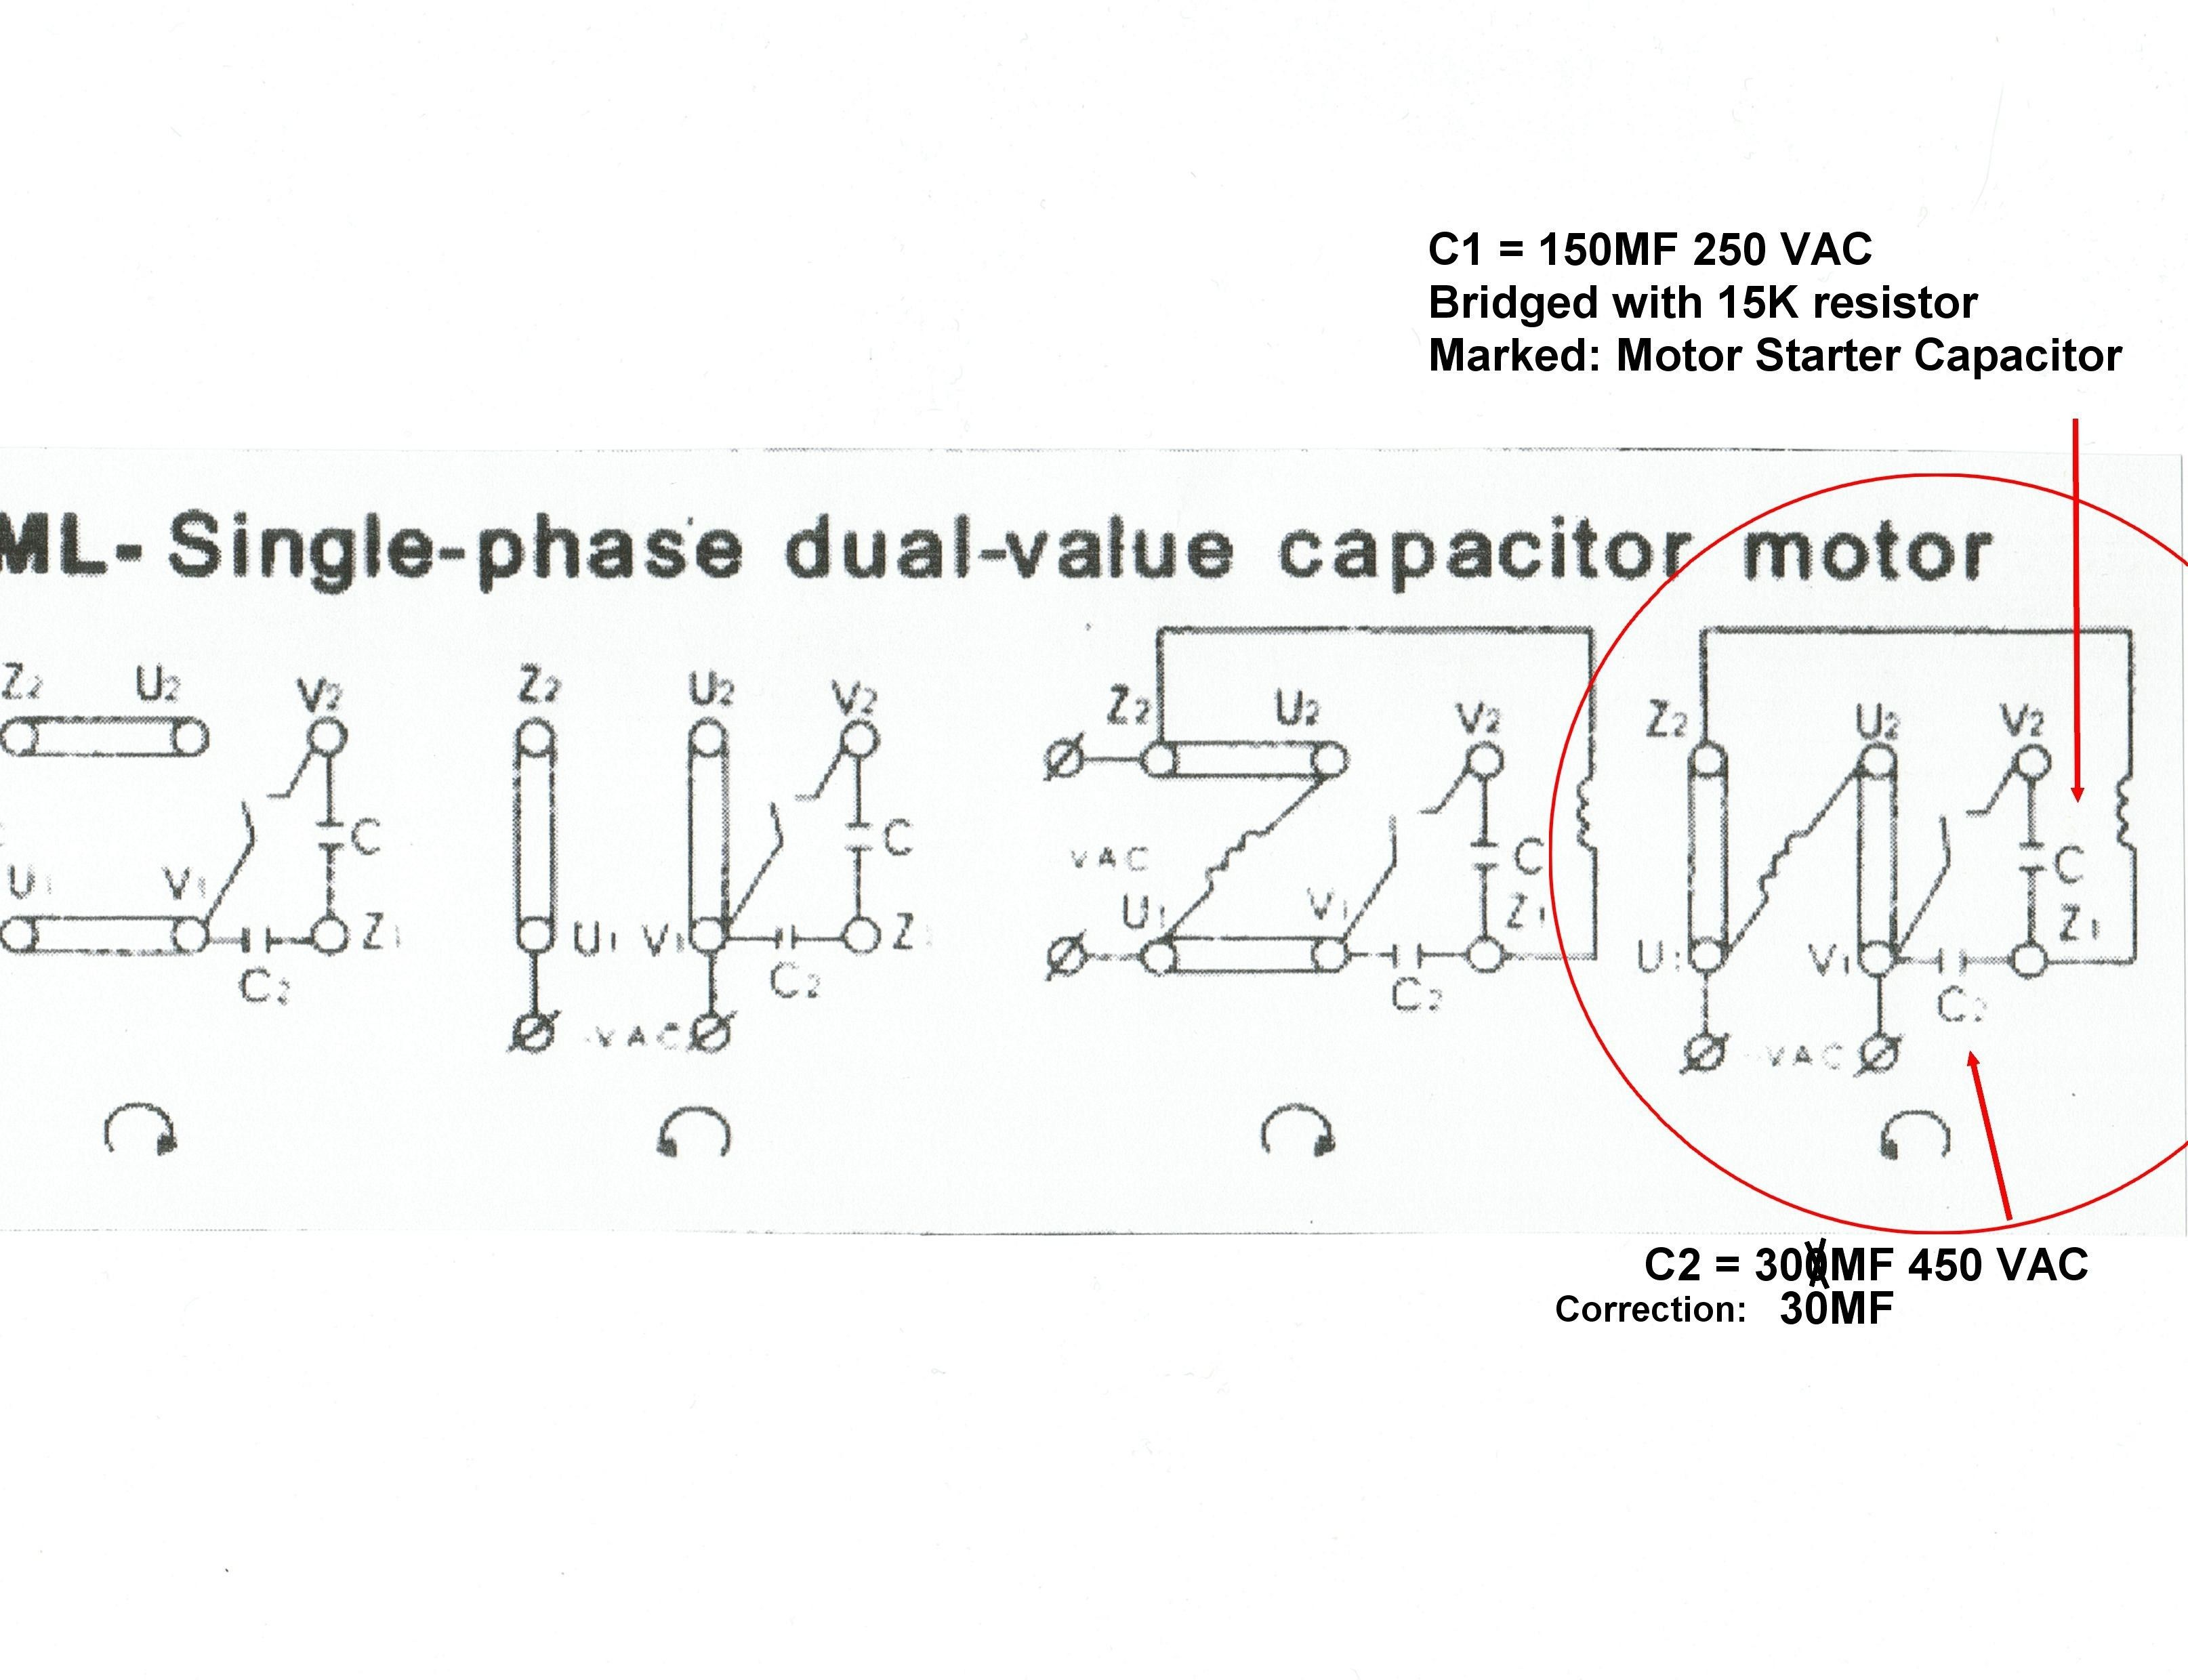 6 Lead Single Phase Motor Wiring Diagram Luxury Excellent